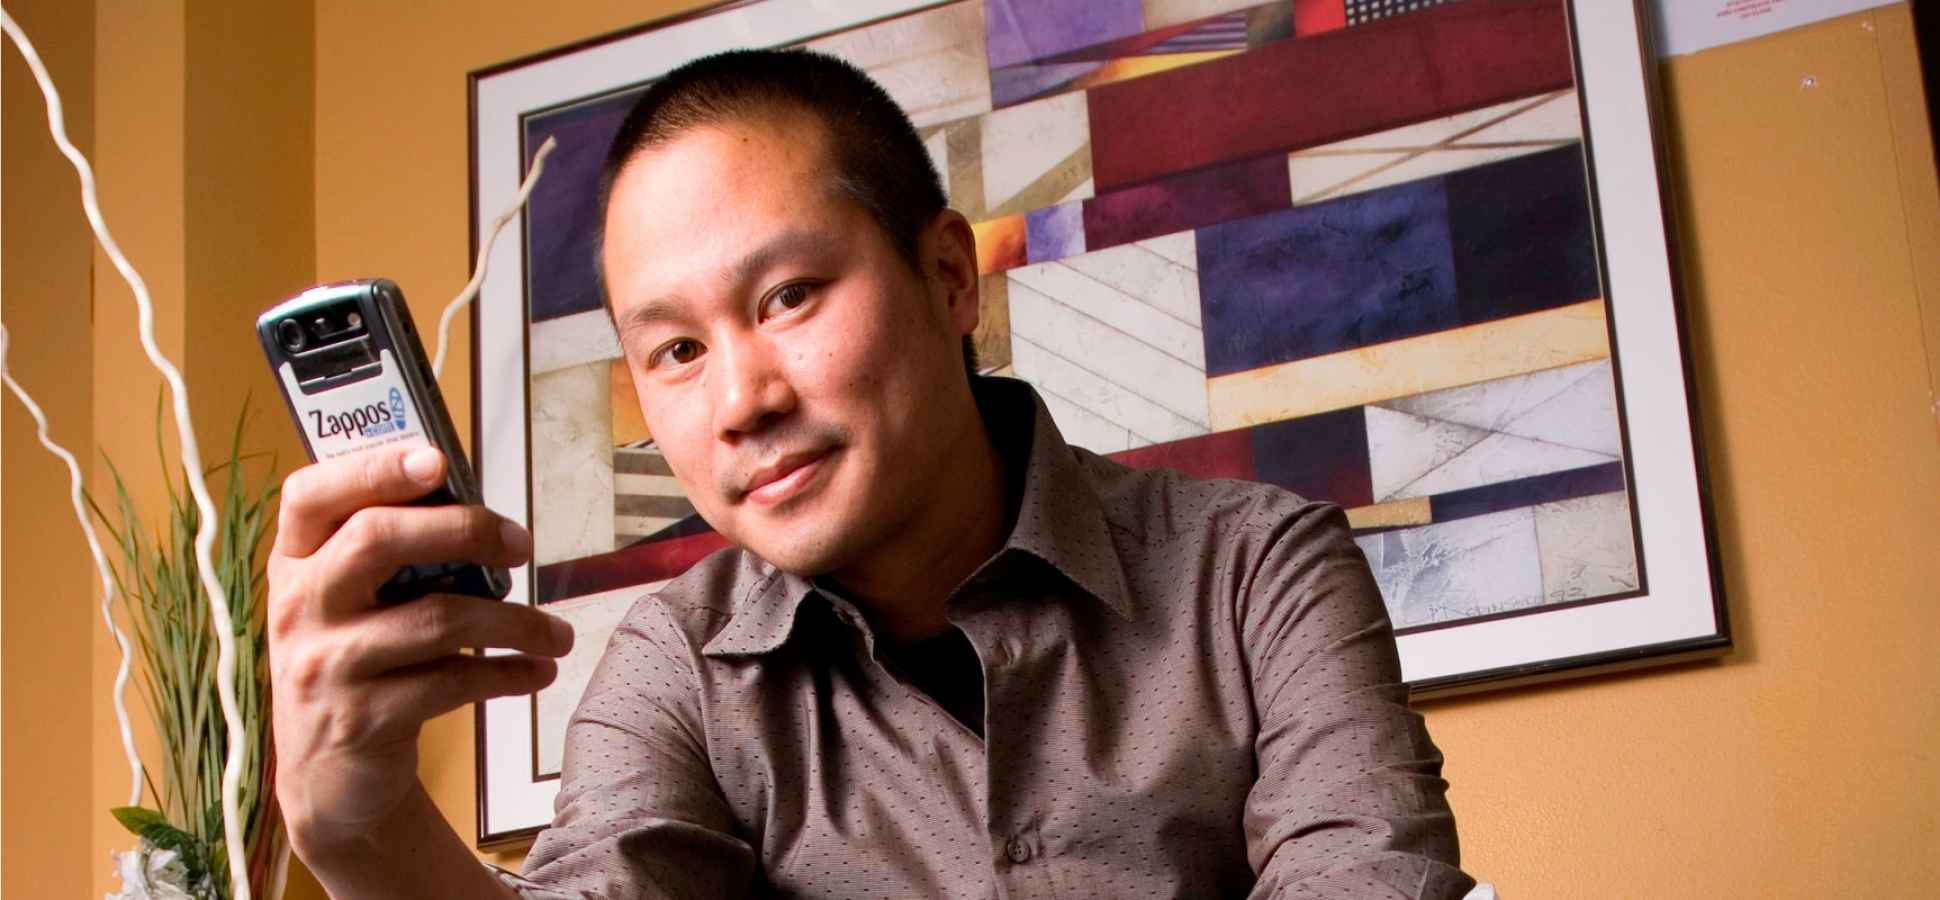 How Tony Hsieh Gets to Inbox Zero